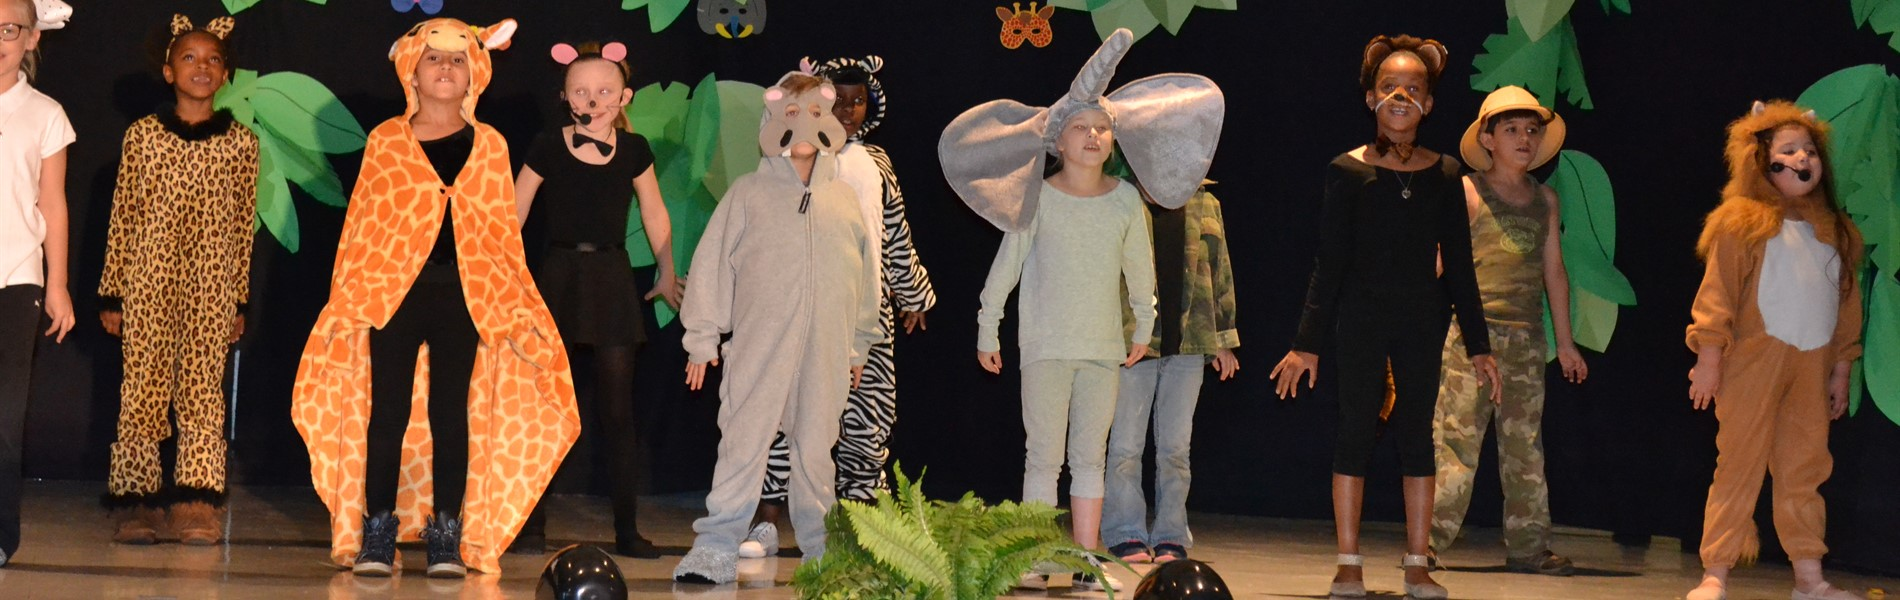 Blackshear Elementary drama students performing drama